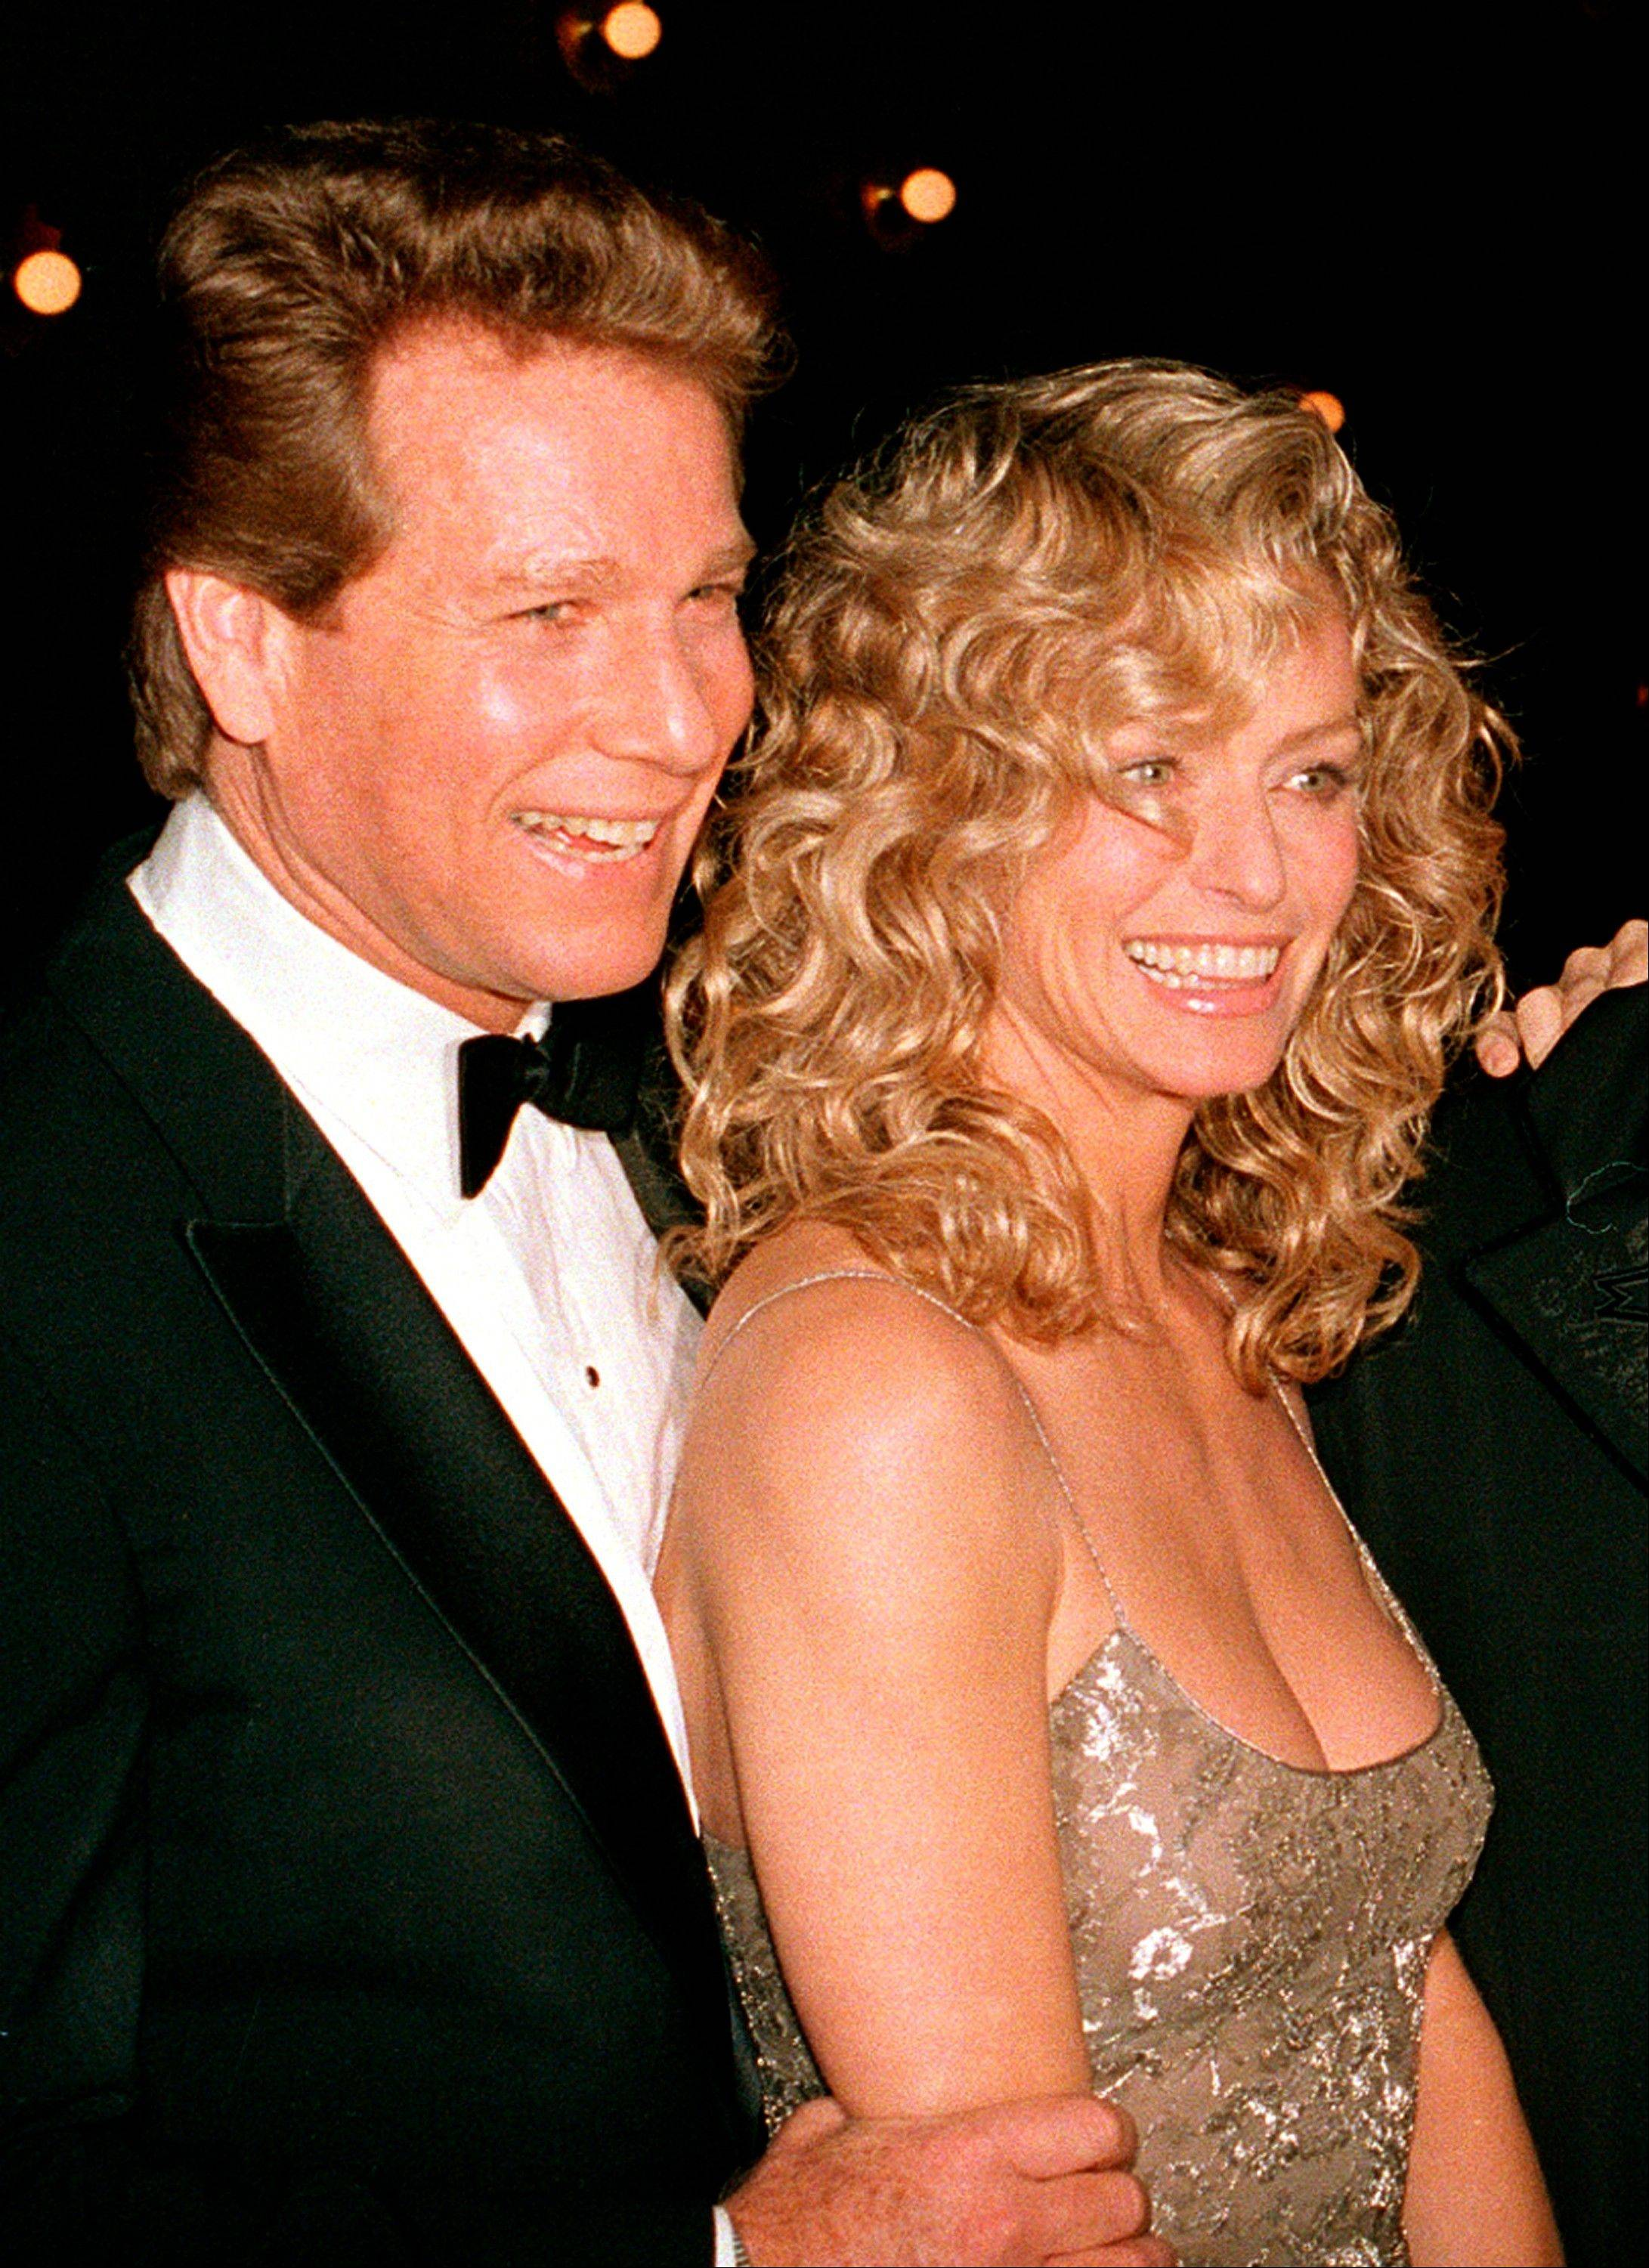 "This March 5, 1989 file photo shows actors Ryan O'Neal, left, and Farrah Fawcett at the premiere of the film. ""Chances Are,"" in New York. Jury selection could begin as early as Thursday, Nov. 21, in a Los Angeles courtroom in a dispute between O'Neal and the University of Texas at Austin over the ownership of an Andy Warhol portrait of Fawcett."